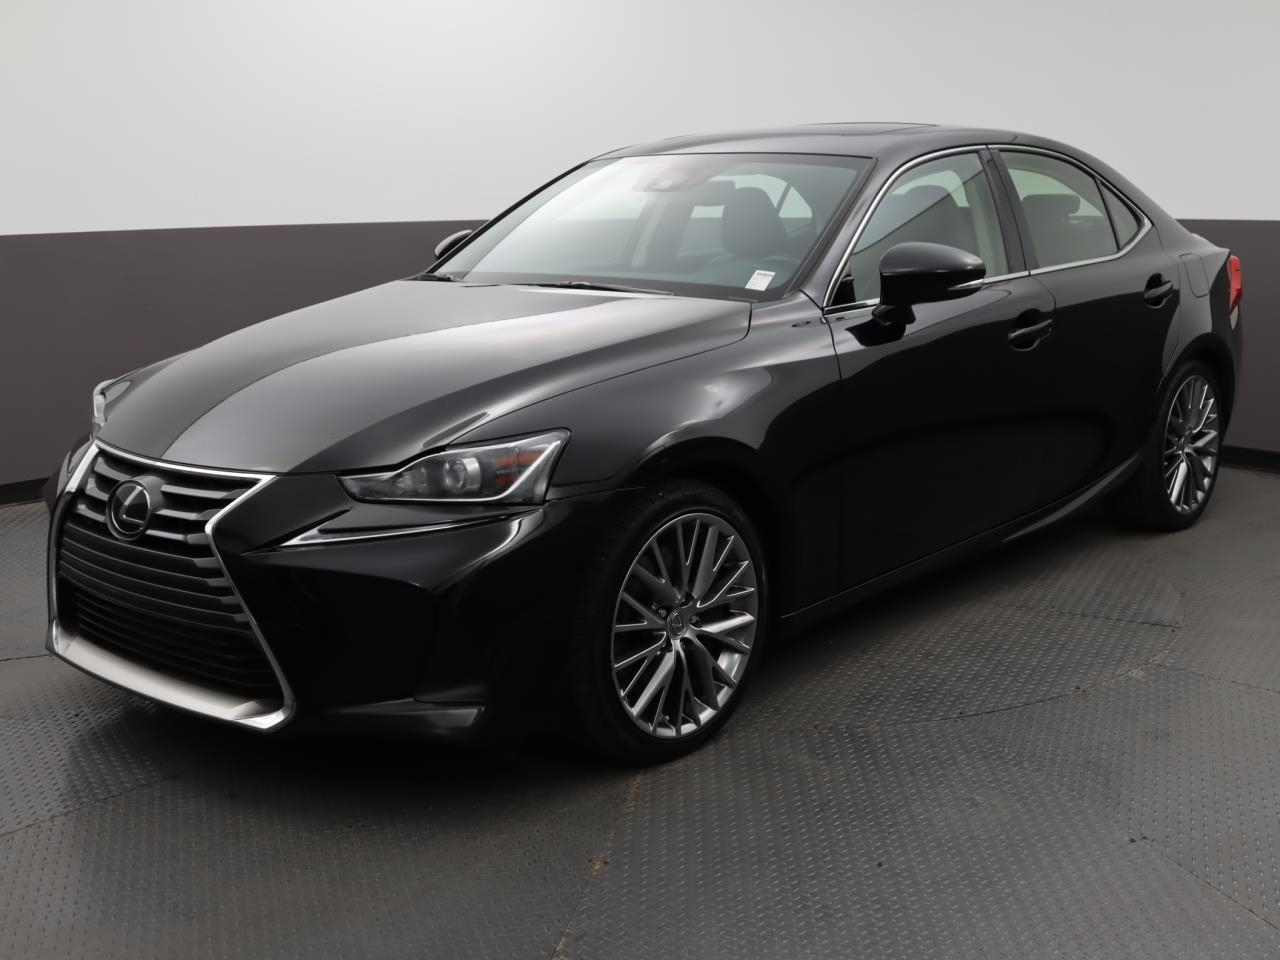 Used LEXUS IS 2017 WEST PALM IS TURBO